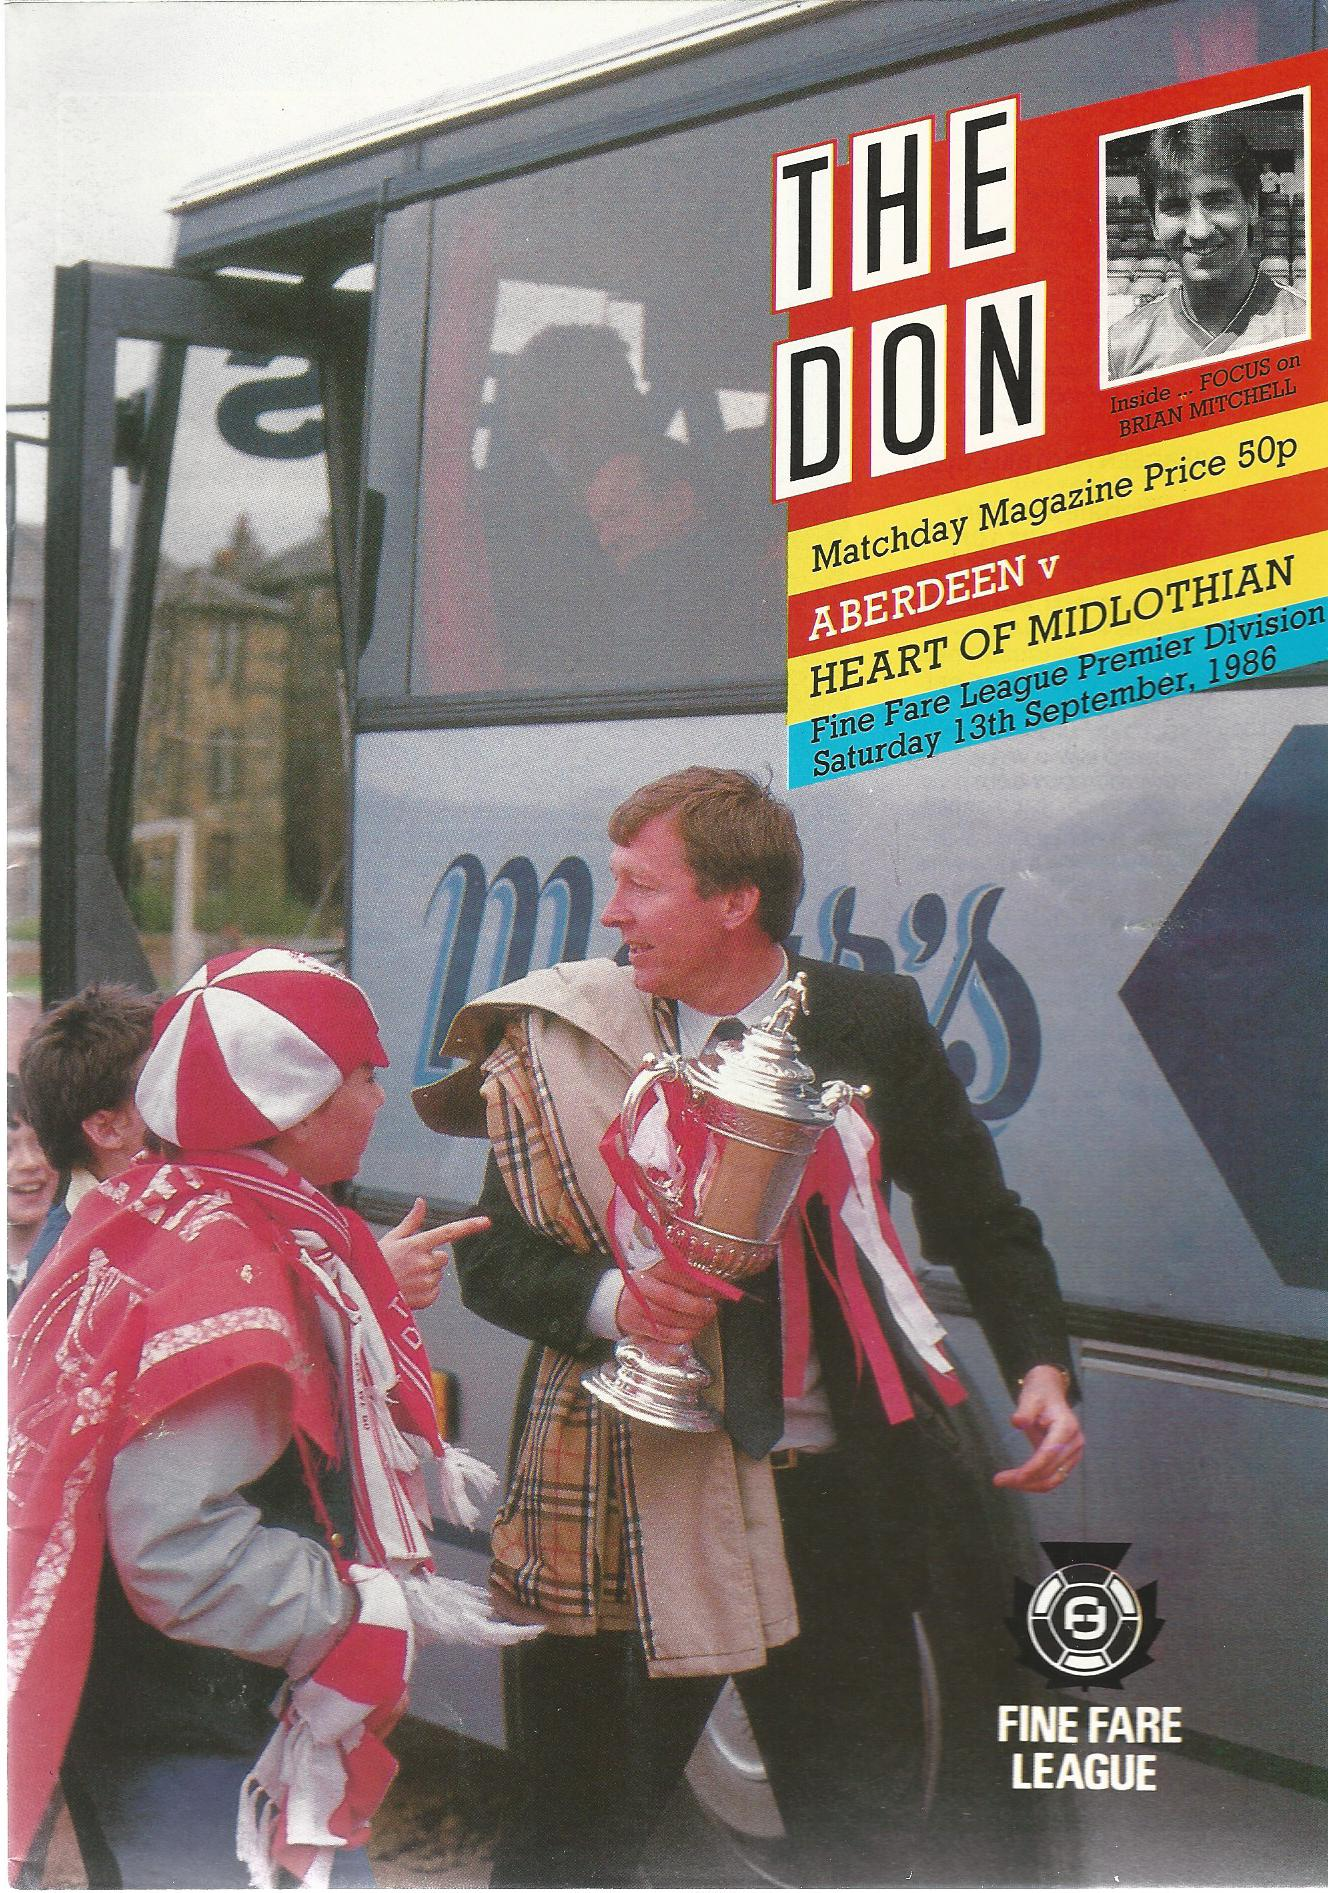 Image for The Don. Matchday Magazine Aberdeen v. Heart of Midlothian. Fine fare League Premier Division.